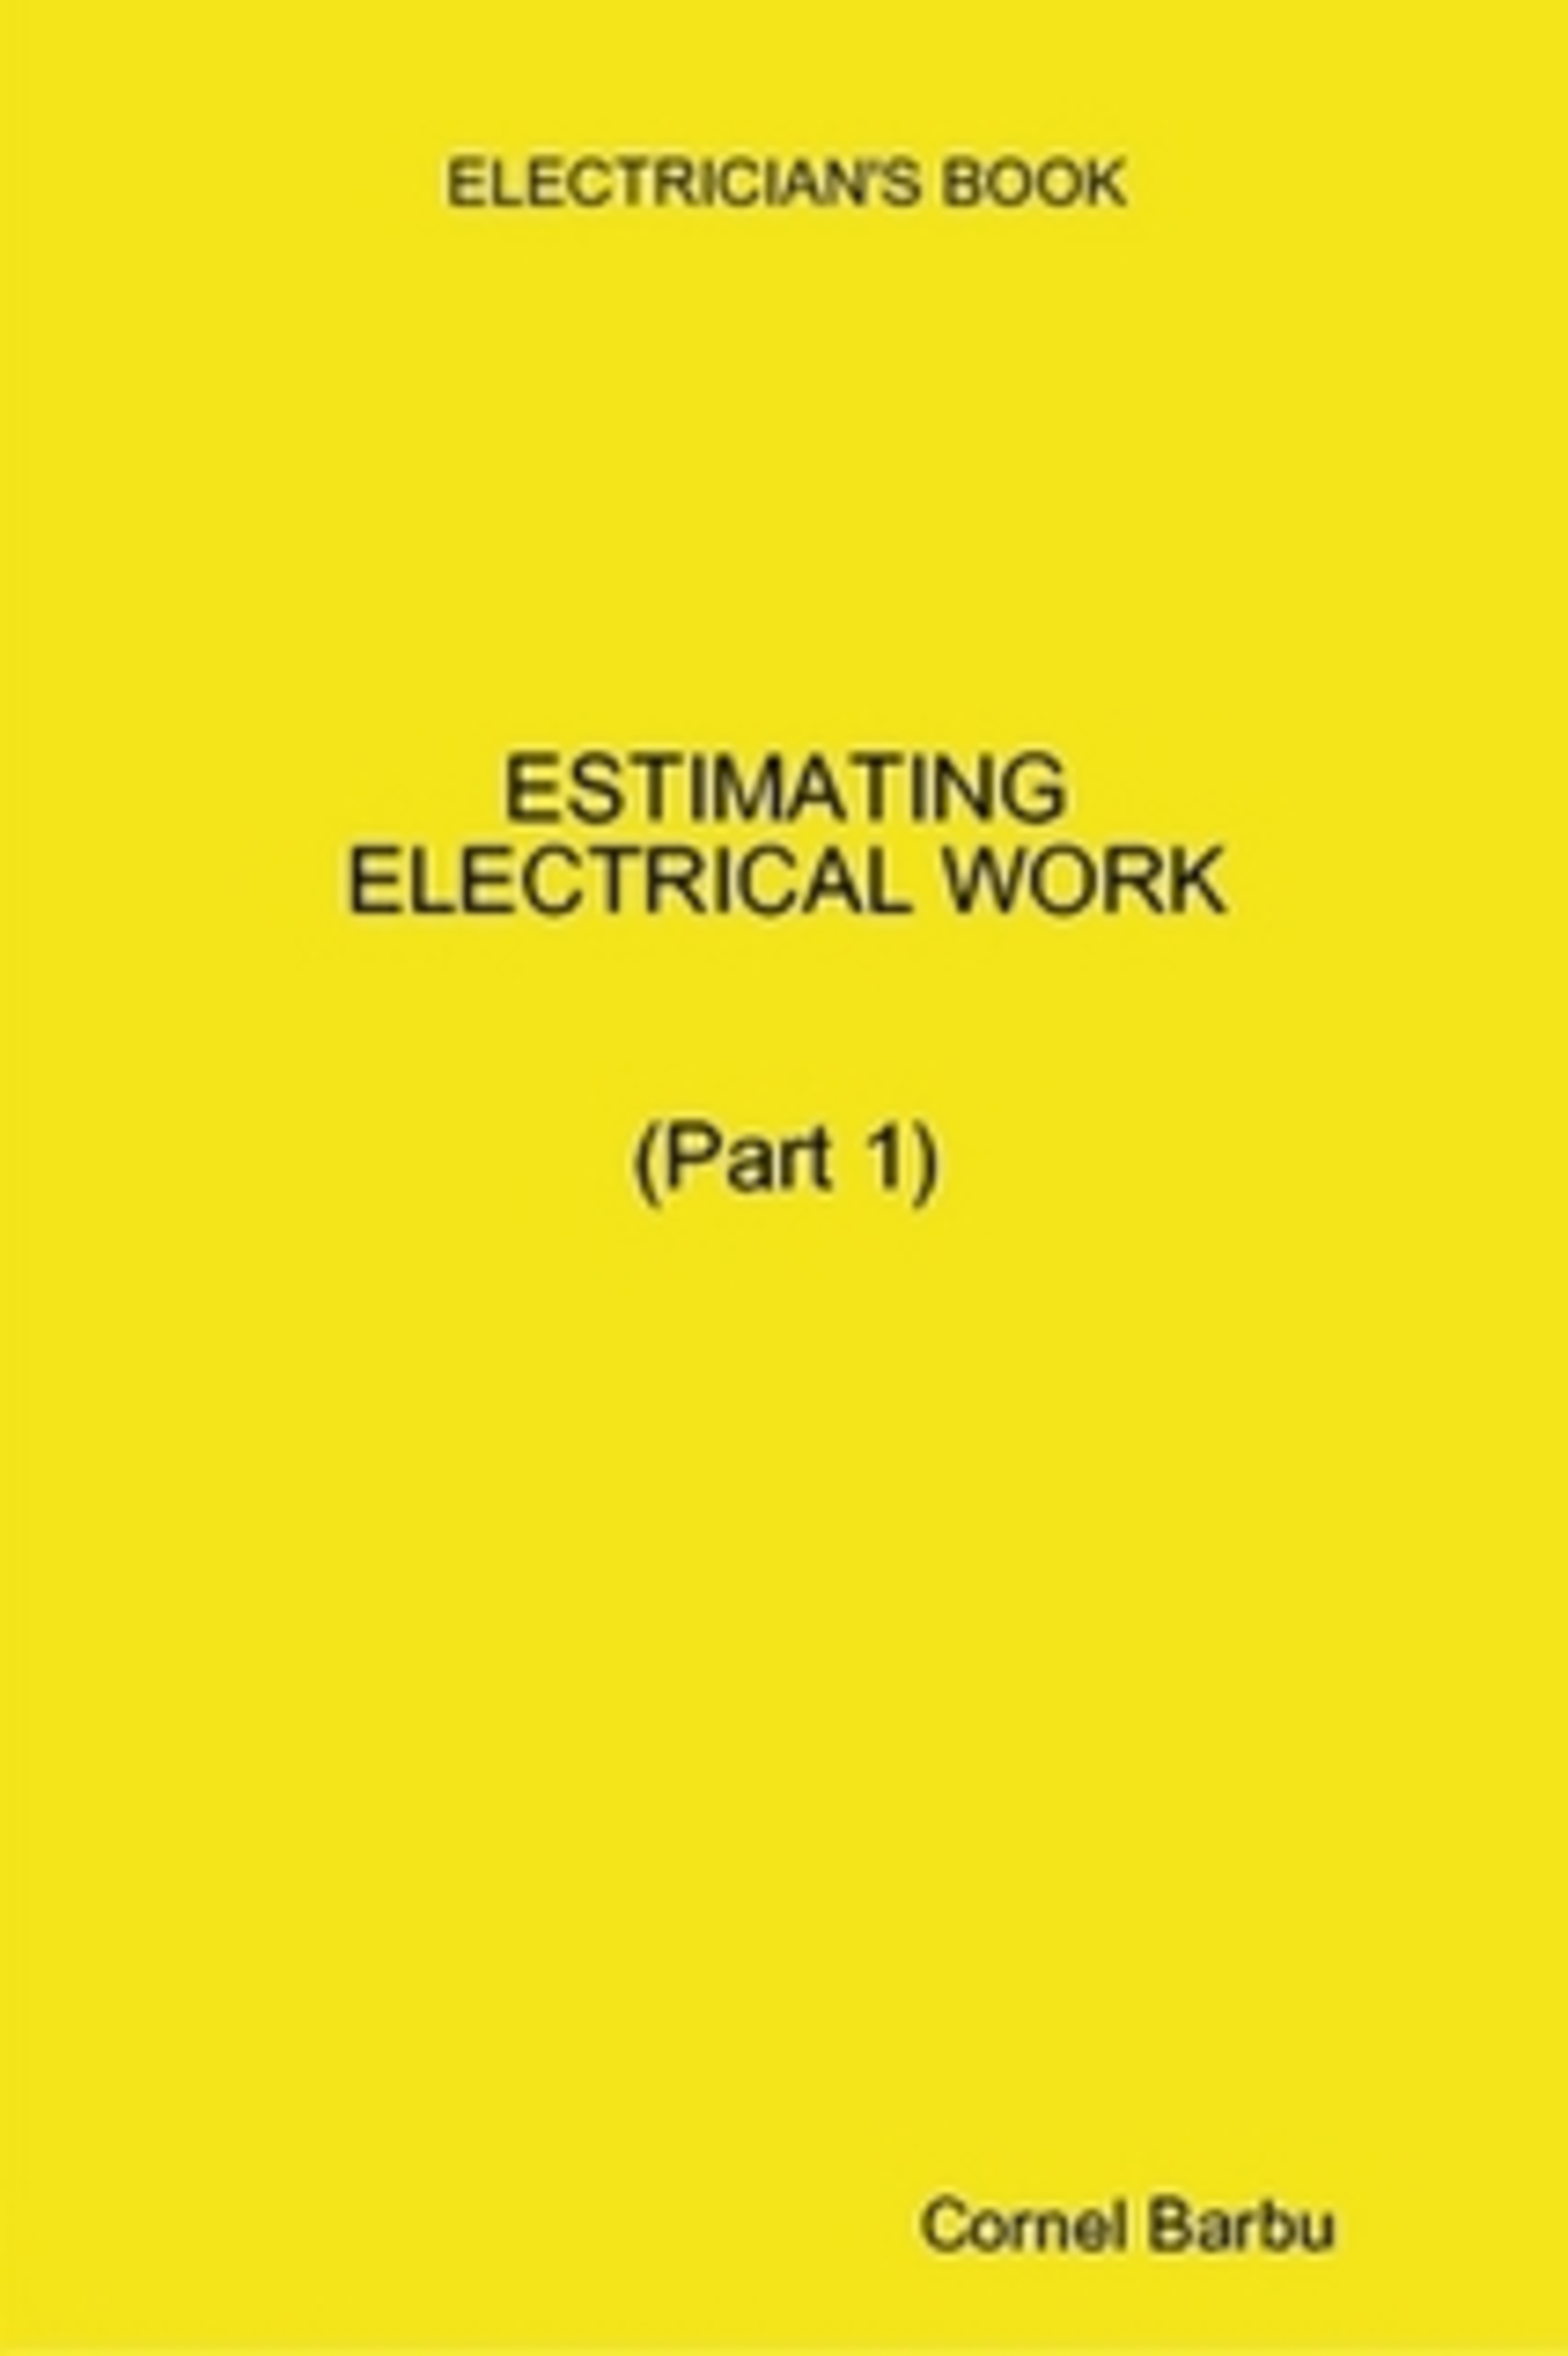 ELECTRICIAN\'S BOOK -ESTIMATING ELECTRICAL WORK 9780557069507 | eBay